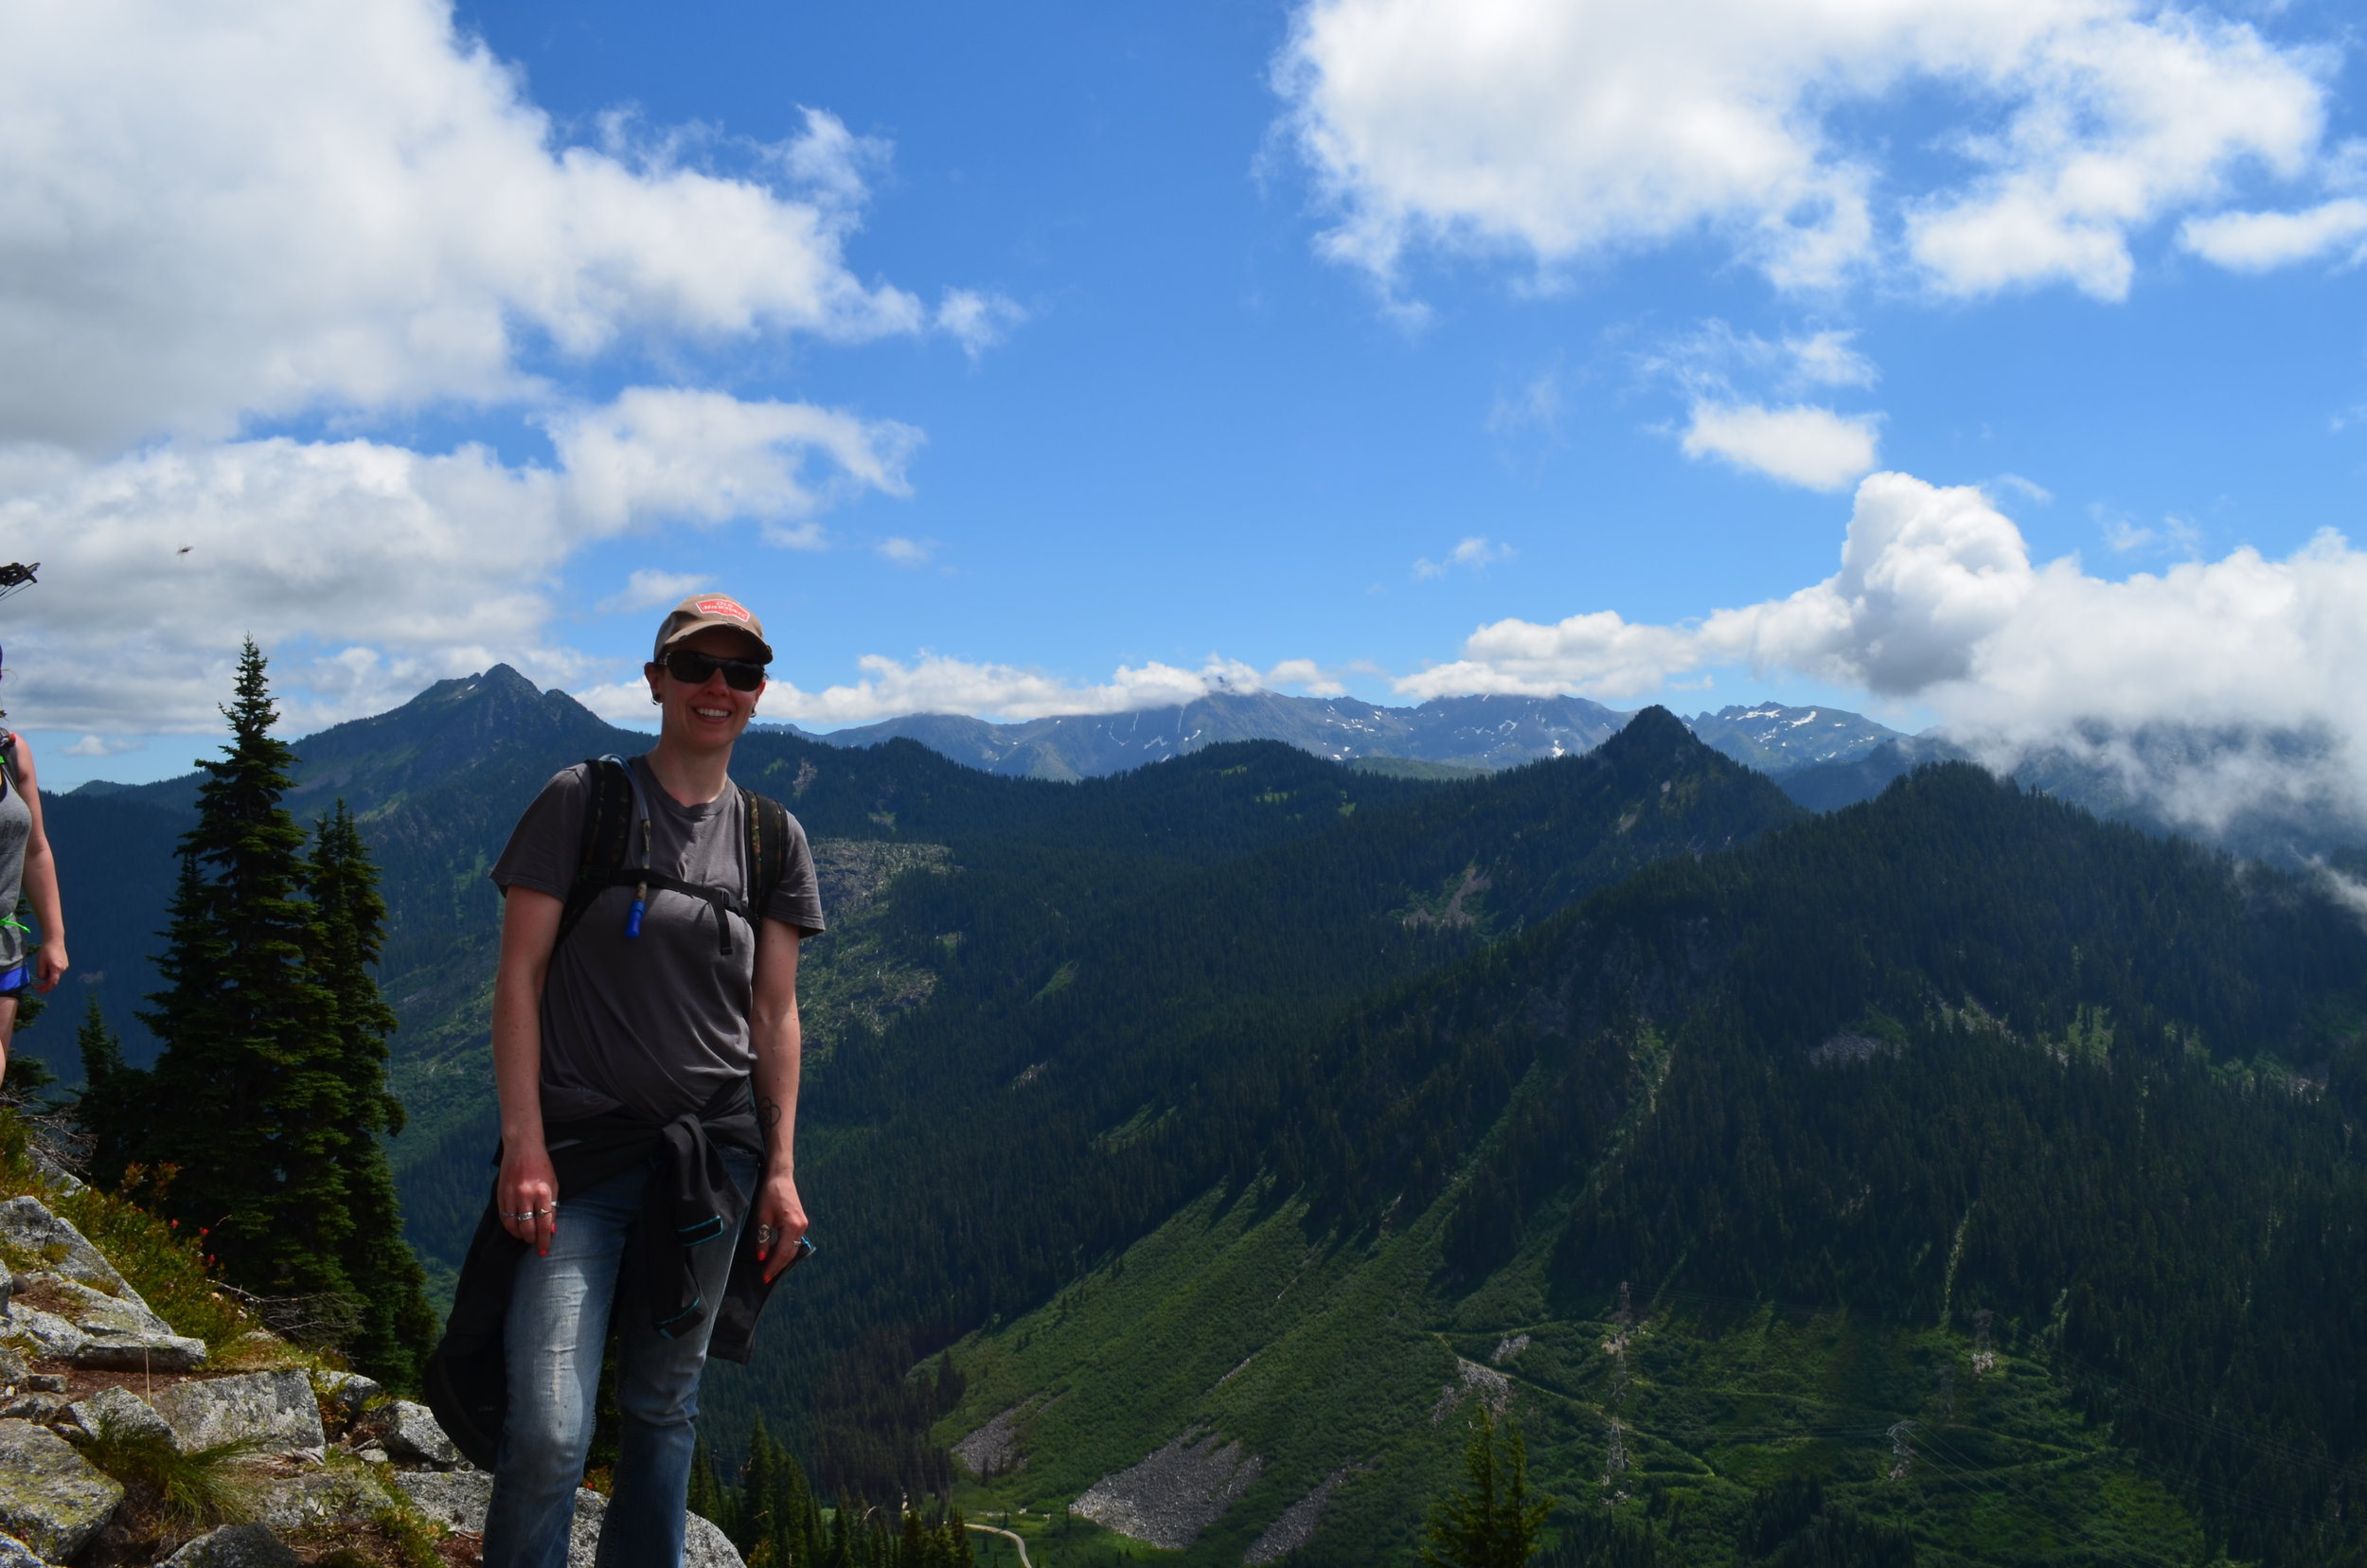 """Laura Morrison on top of the world in Stevens Pass Washington during the """"Northwest Mountain Challenge – Archery Shoot""""."""